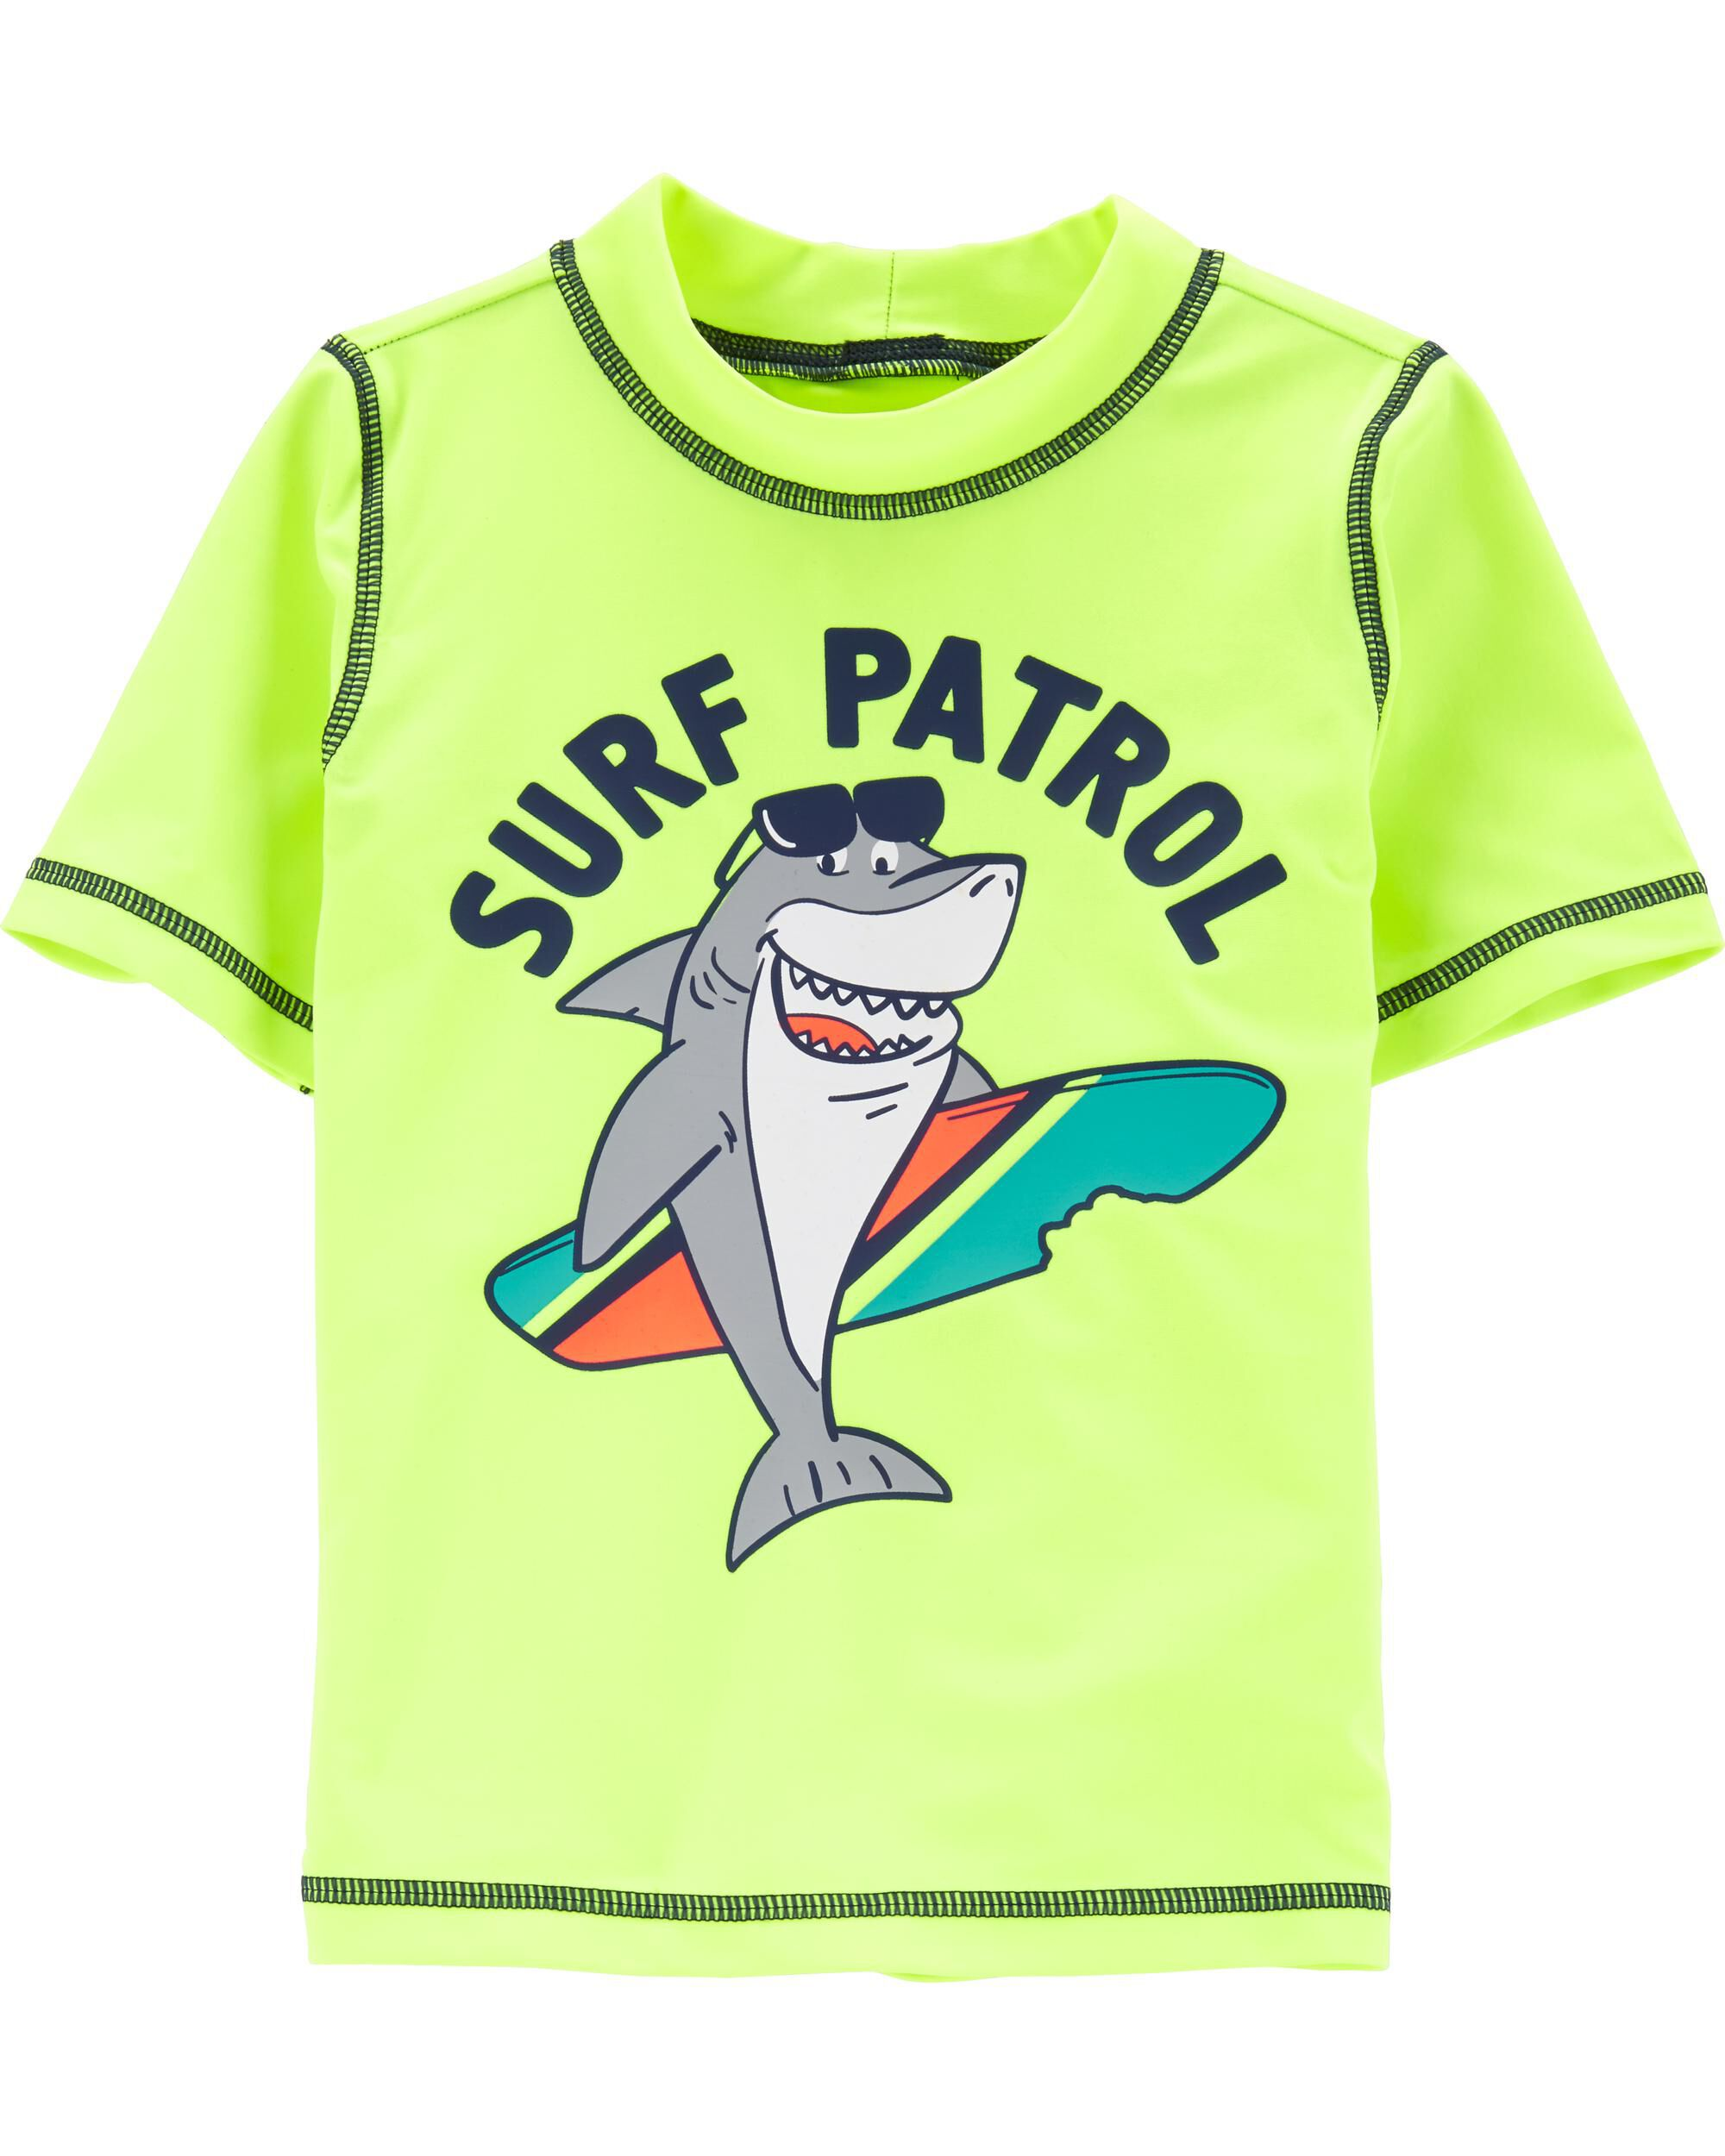 *Clearance*  Carter's Neon Shark Surf Patrol Ras...